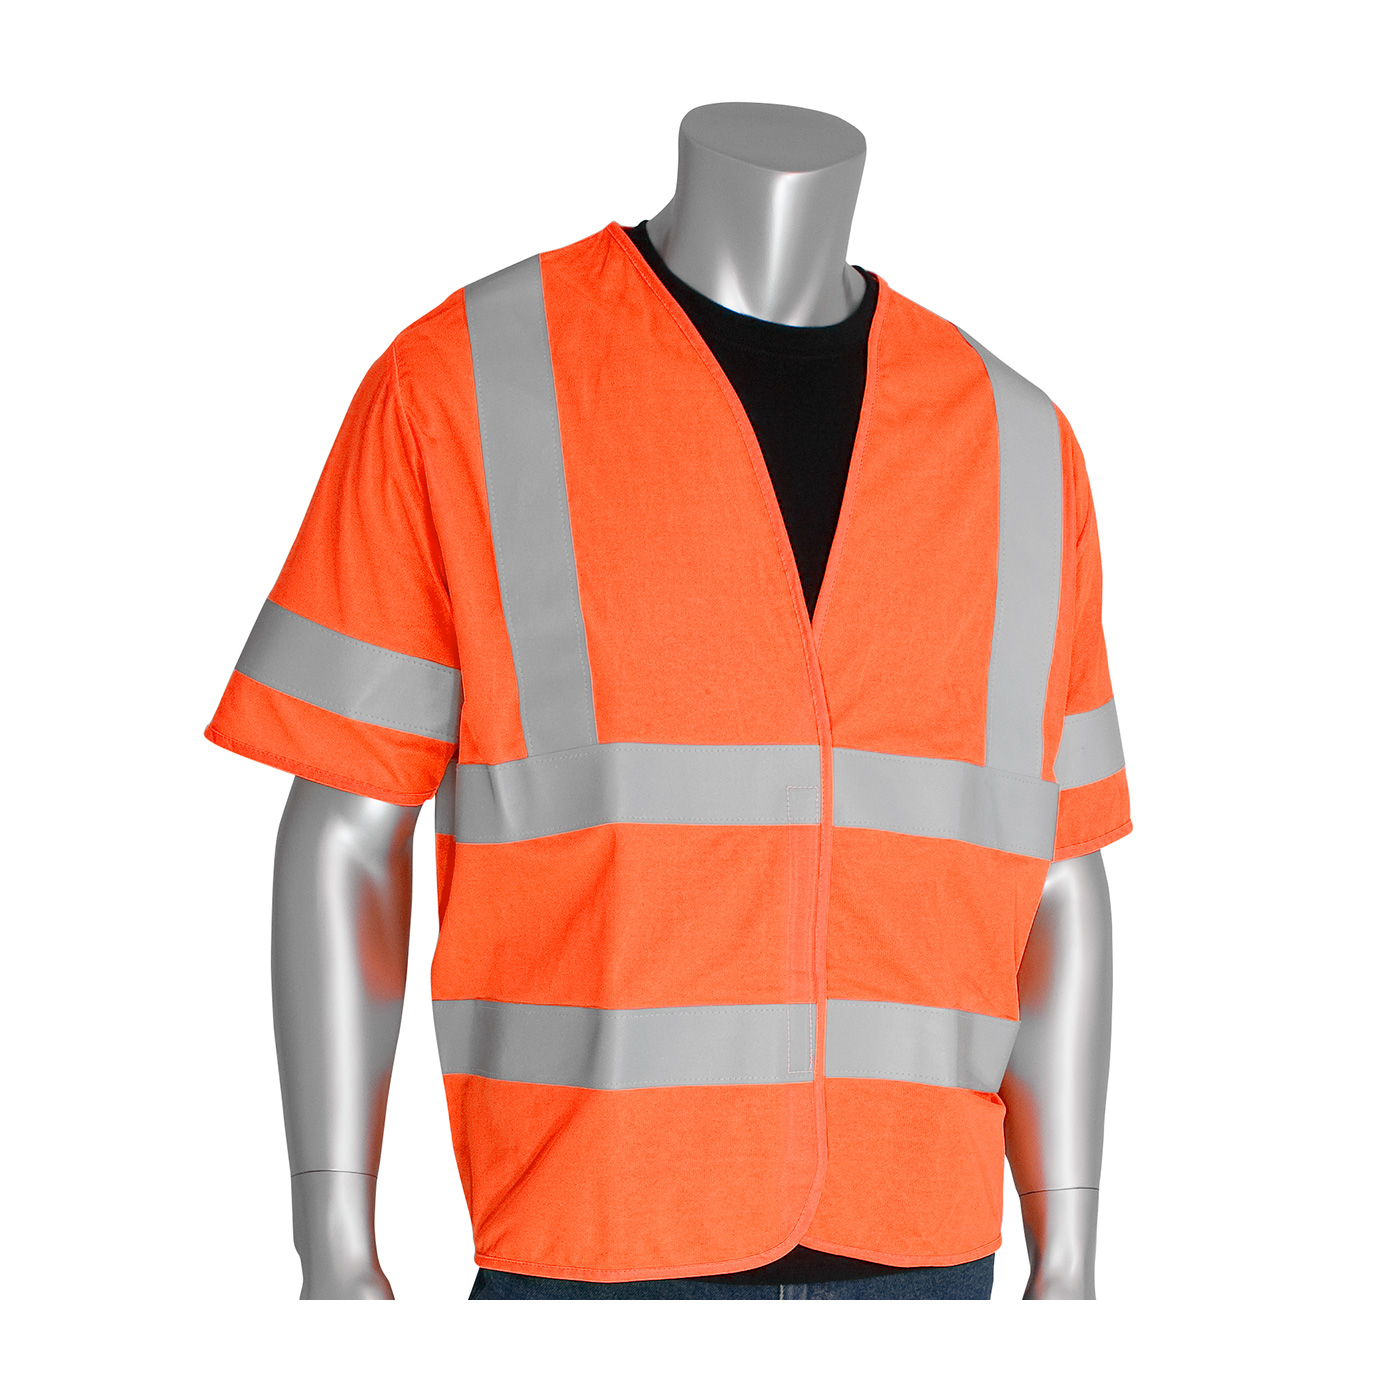 PIP 305-HSSVFROR ANSI Class 3 FR-Treated Solid Fabric Vest, Hi Vis Orange